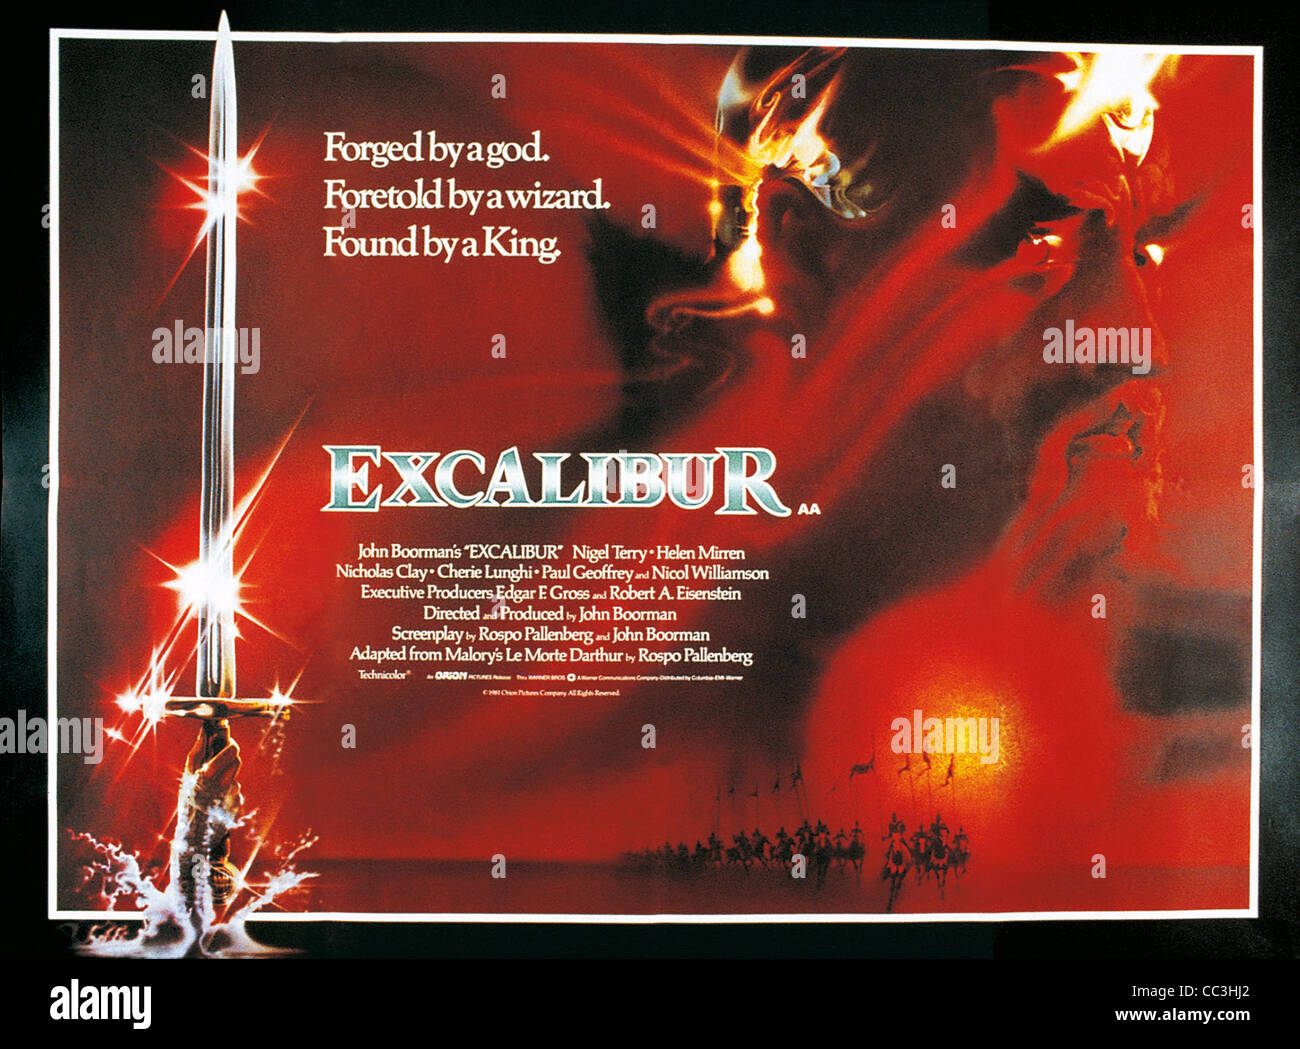 Film Posters: Excalibur, 1981, Directed By John Boorman - Stock Image